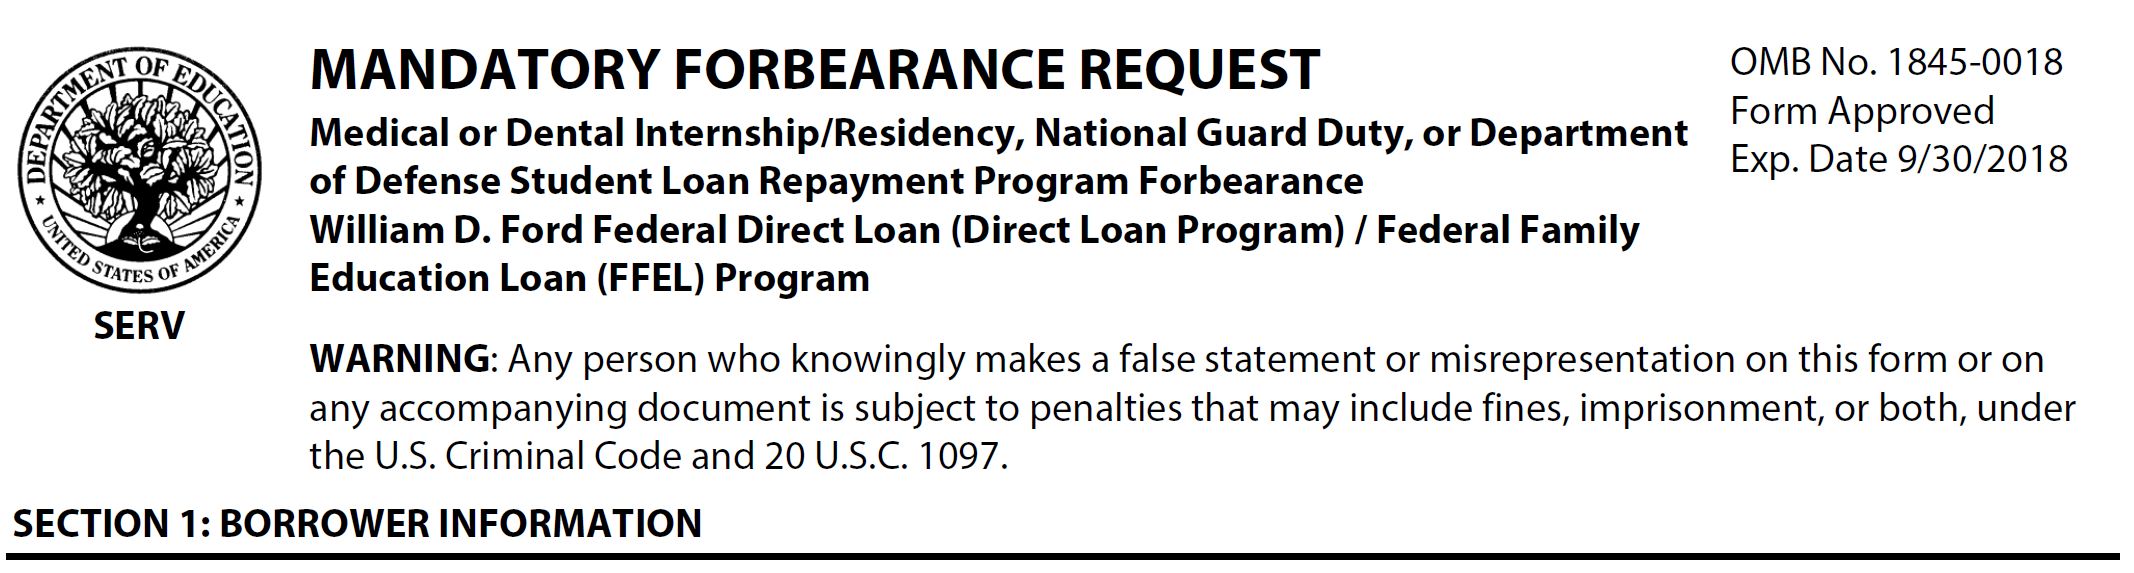 forbearance_request.png